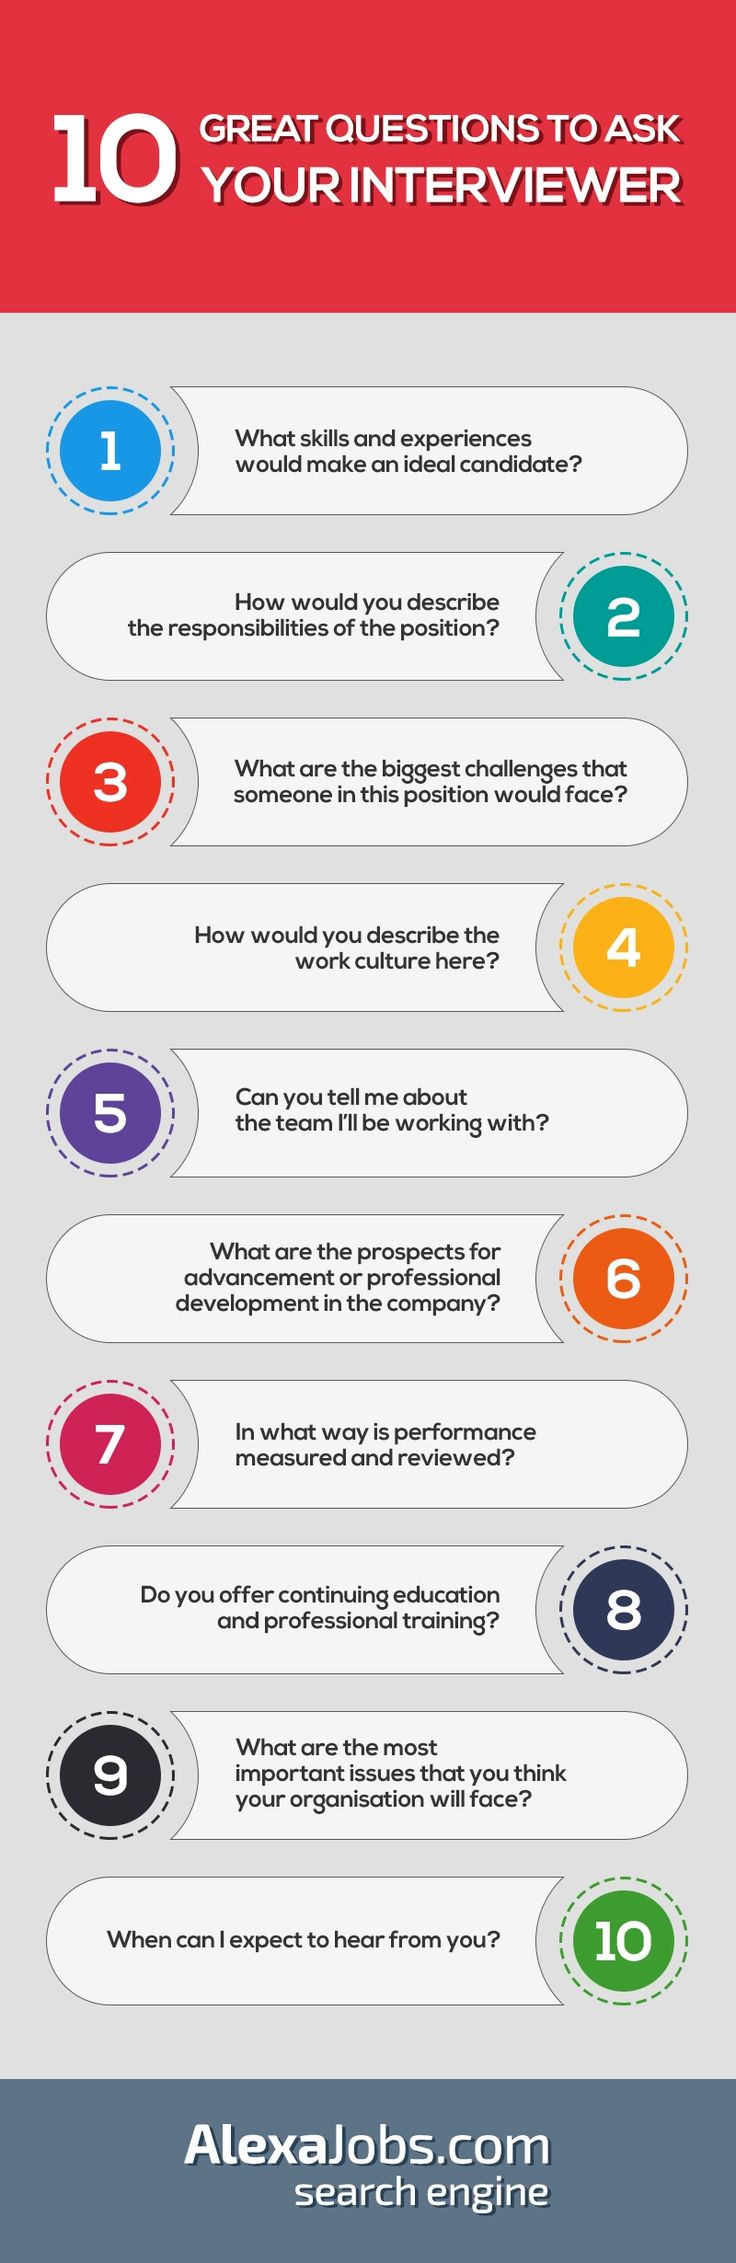 ideas about supervisor interview questions infographic often job interviews can feel like an interrogation but they re meant to be a conversation between you and a potential employer